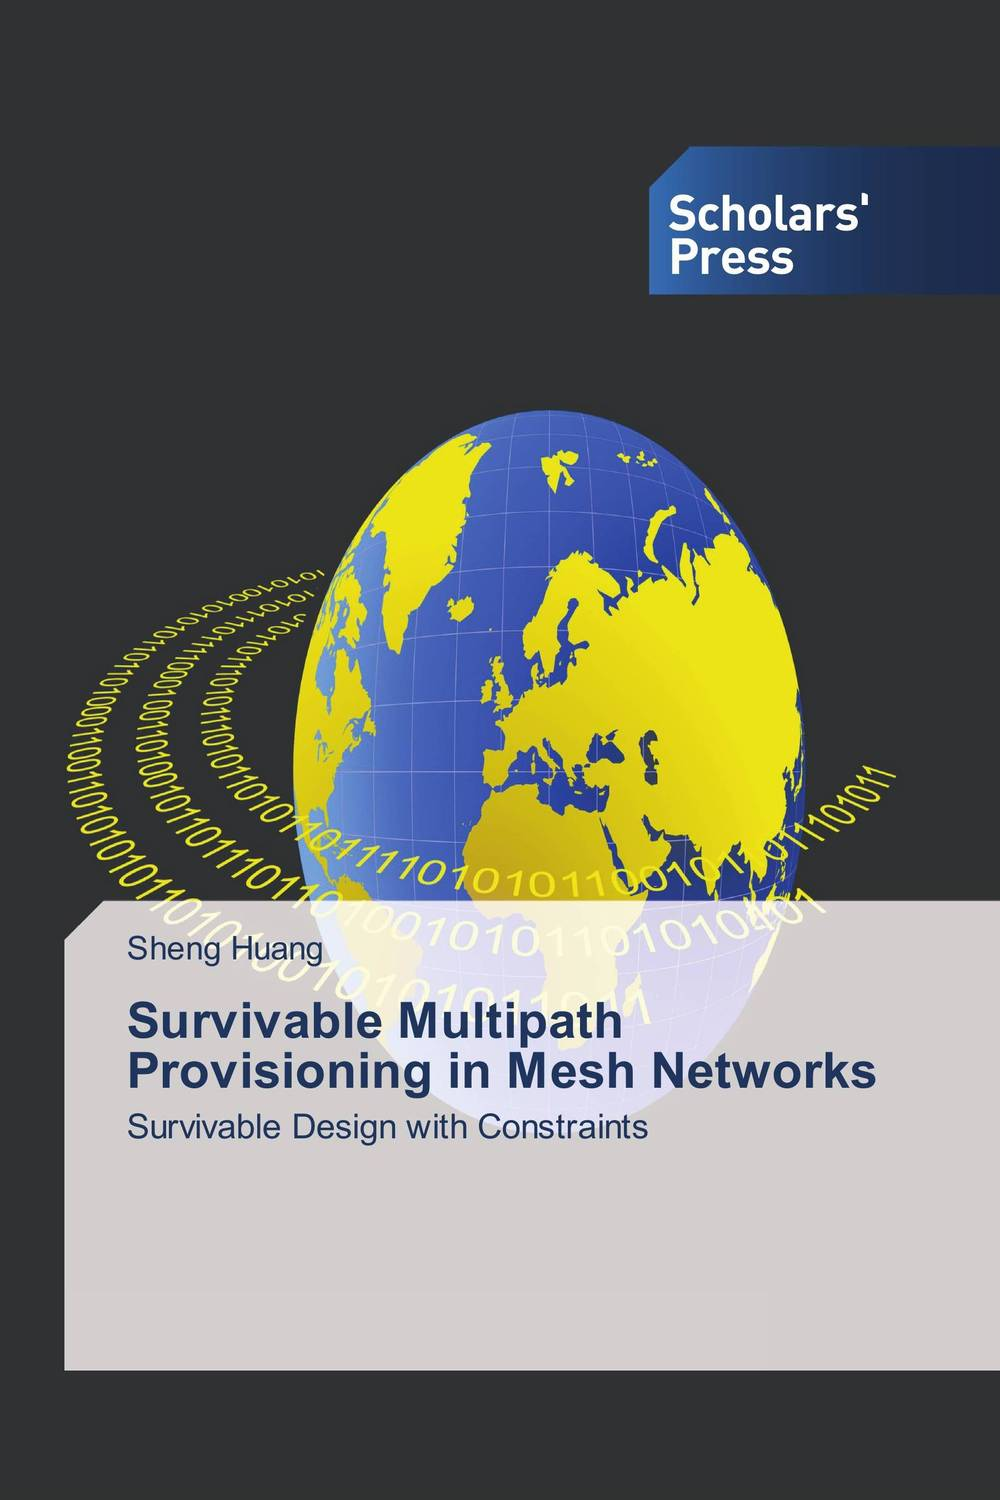 Survivable Multipath Provisioning in Mesh Networks annlee hines a planning for survivable networks